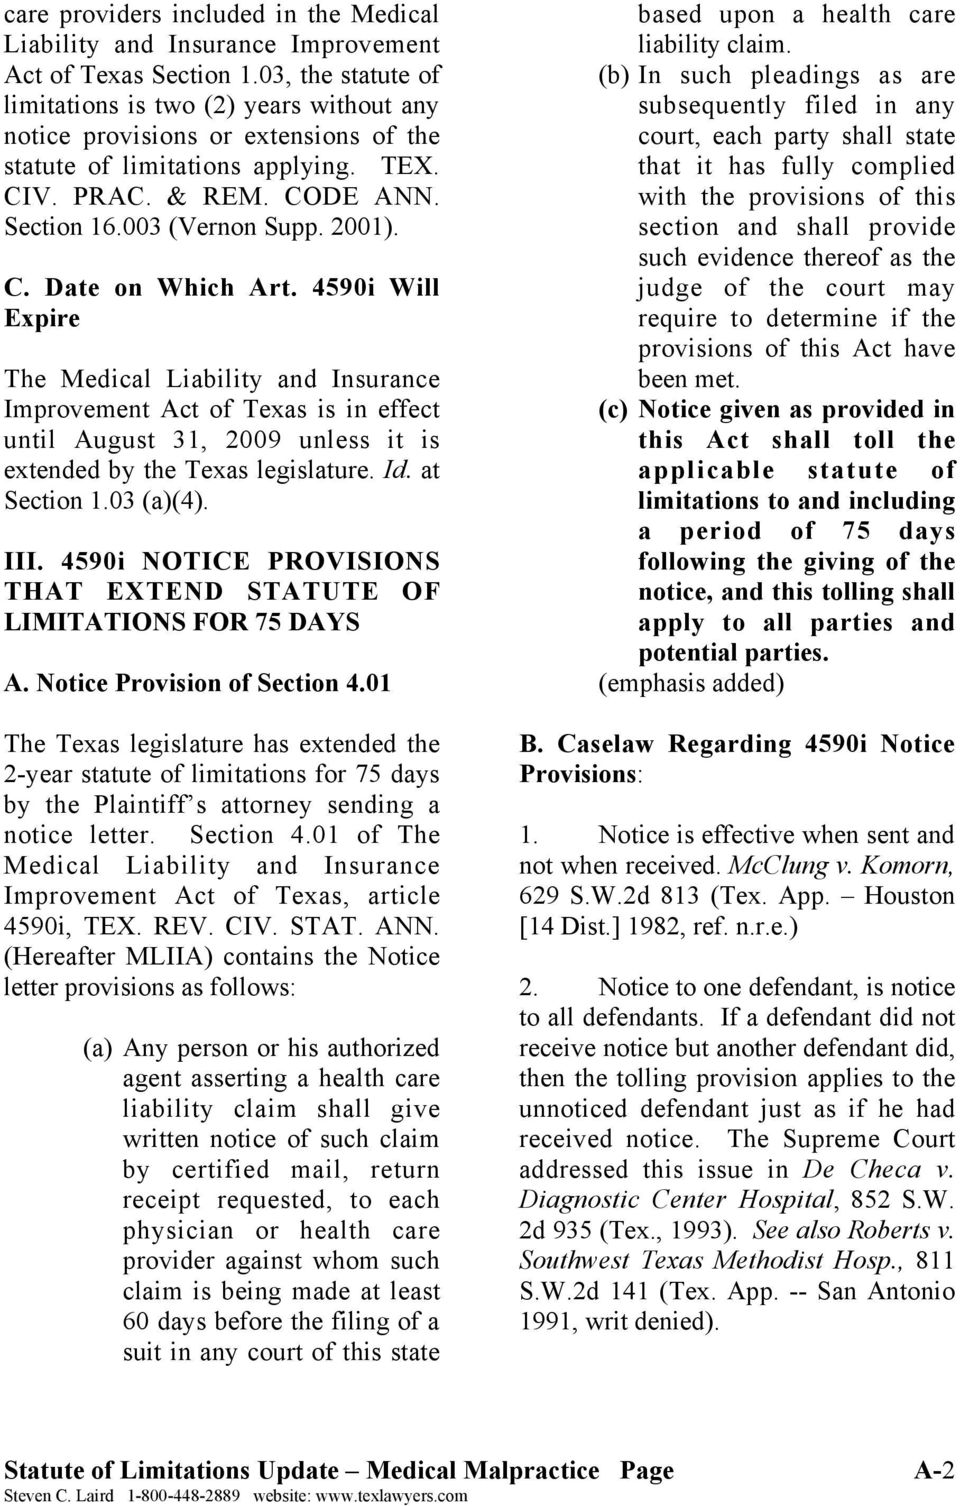 C. Date on Which Art. 4590i Will Expire The Medical Liability and Insurance Improvement Act of Texas is in effect until August 31, 2009 unless it is extended by the Texas legislature. Id.